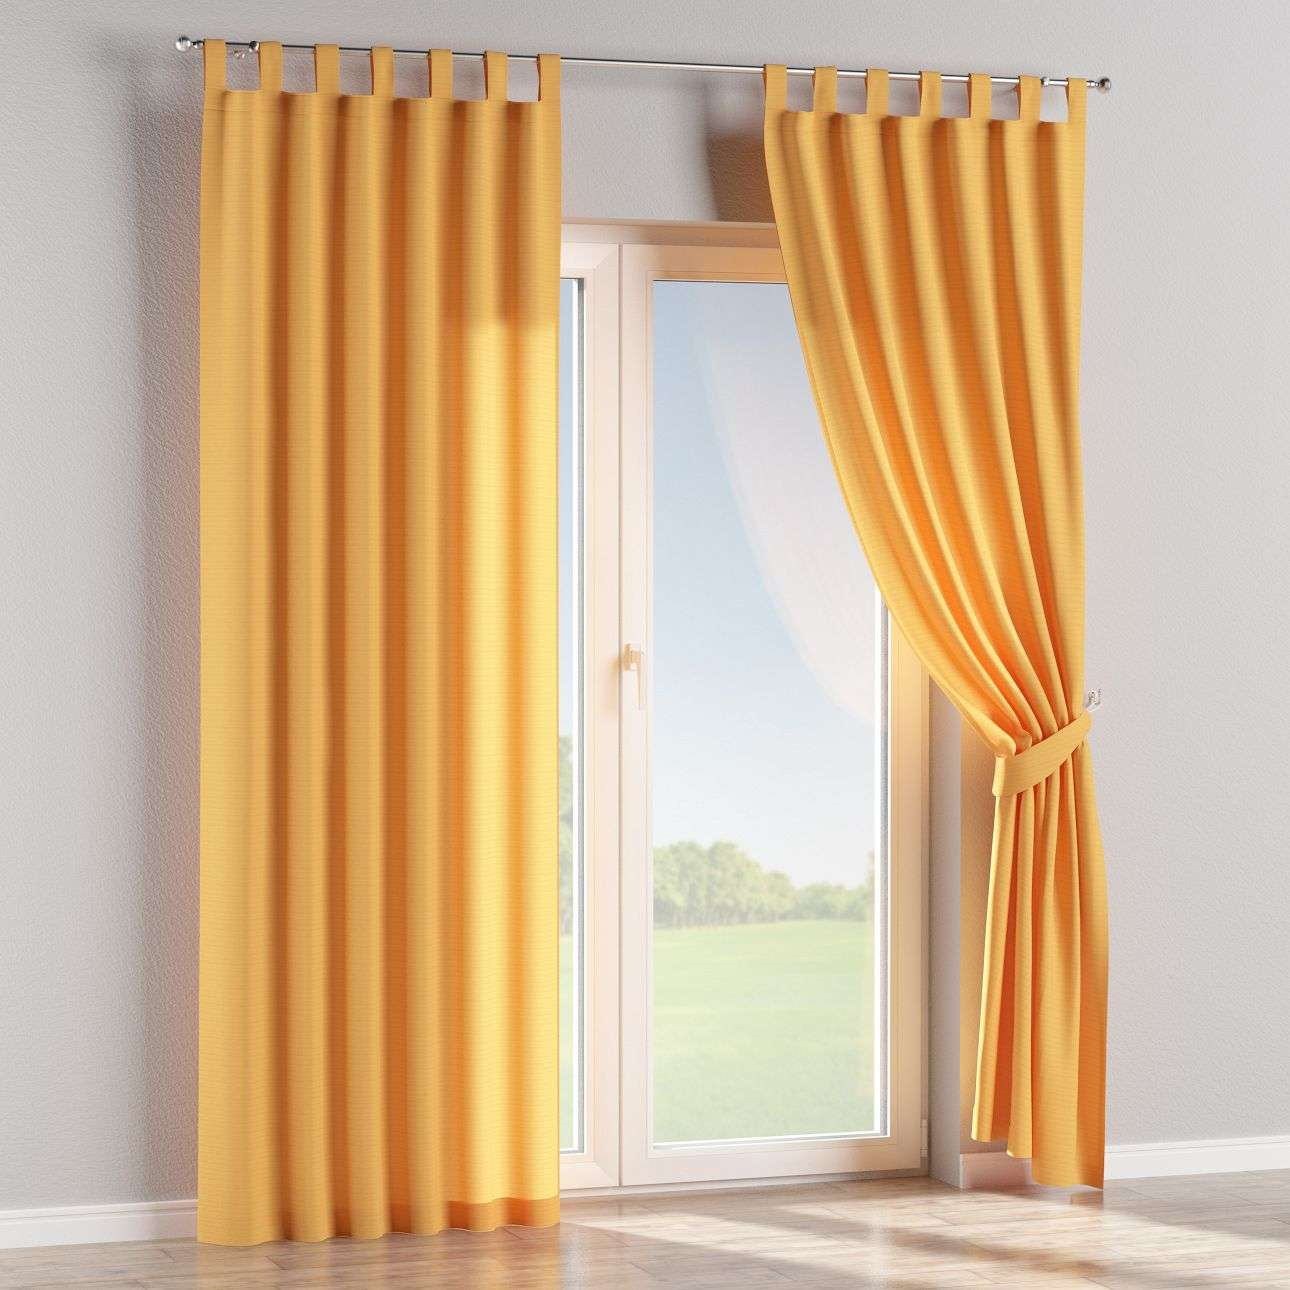 Tab top curtains 130 x 260 cm (51 x 102 inch) in collection Jupiter, fabric: 127-46